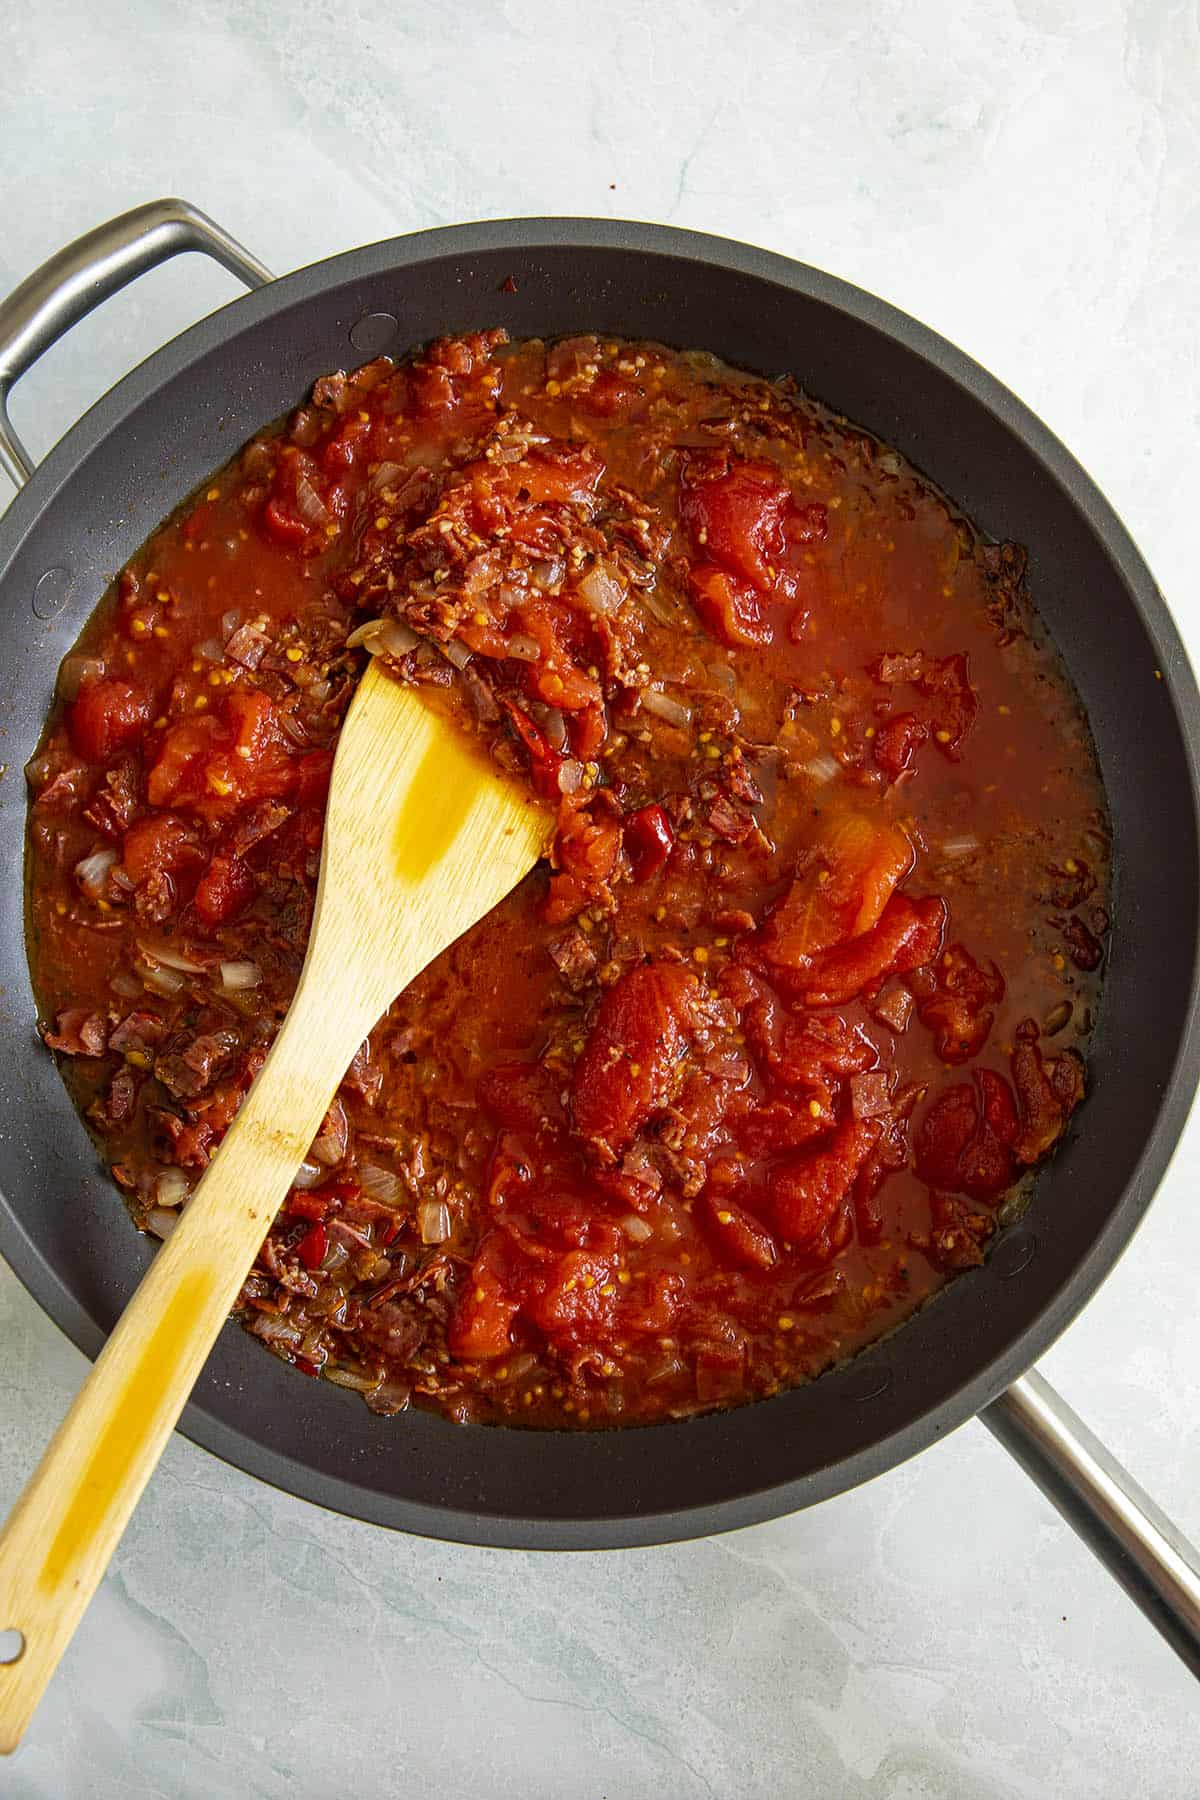 Stirring the Amatriciana sauce in a pan